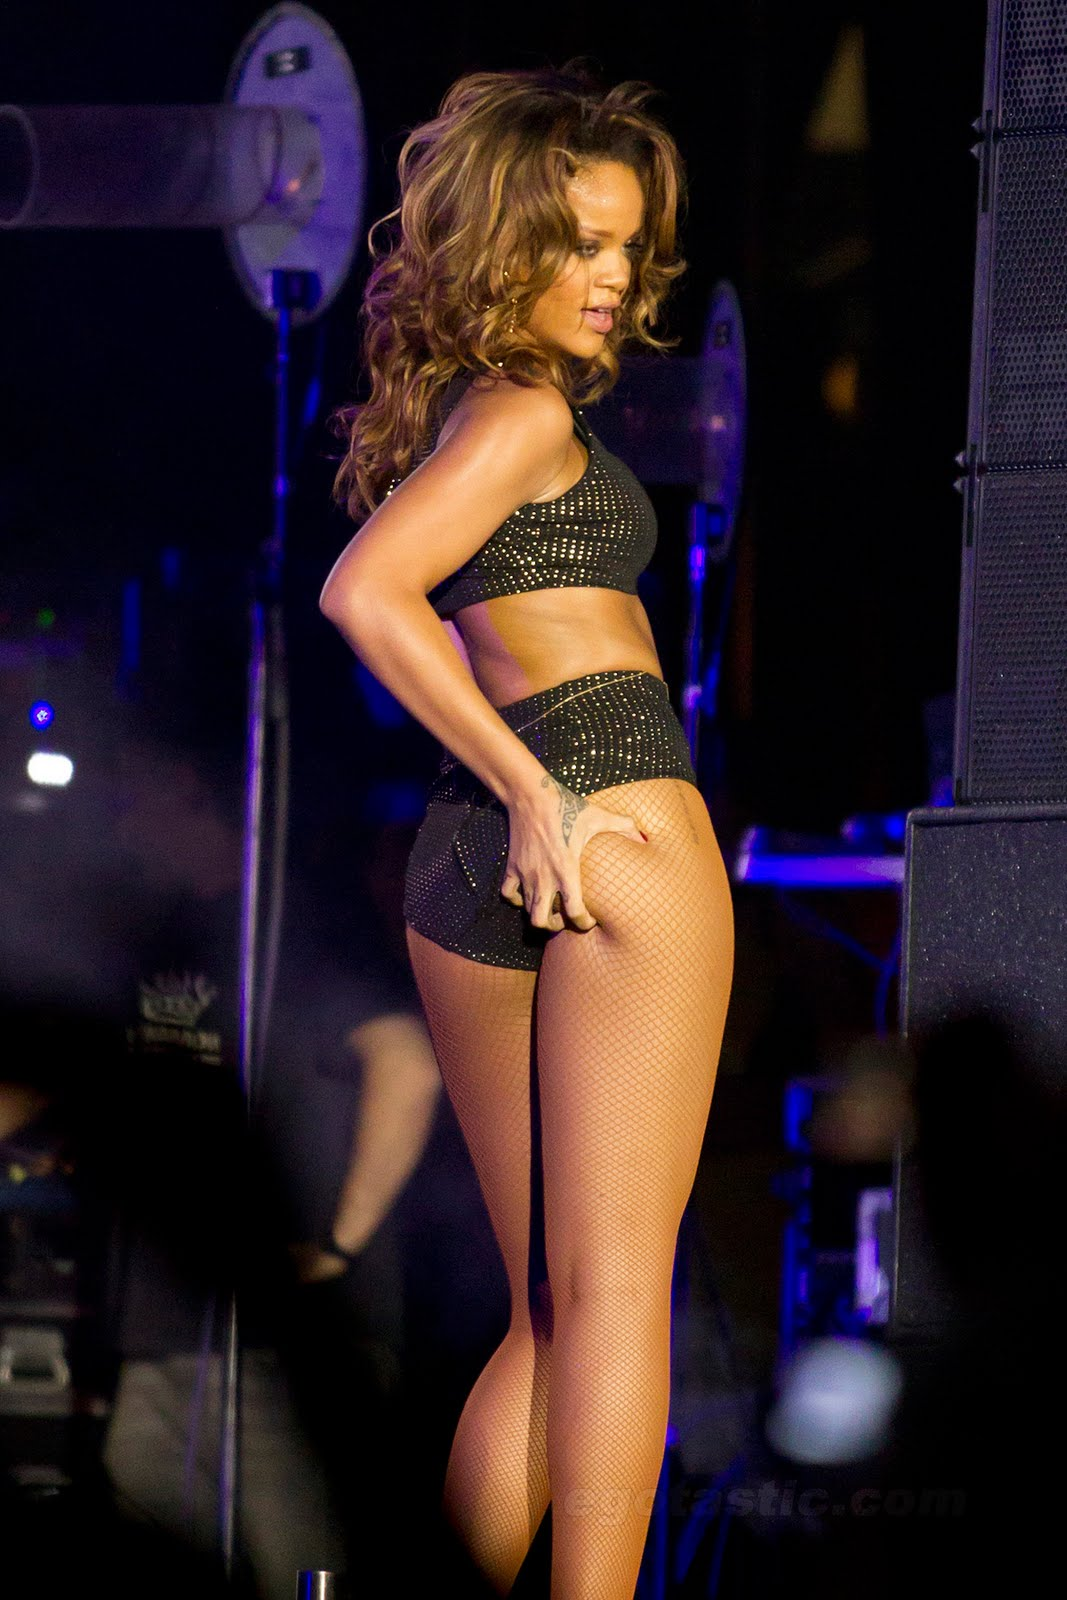 nobody touches themselves on stage quite like rihanna the sextastic ...